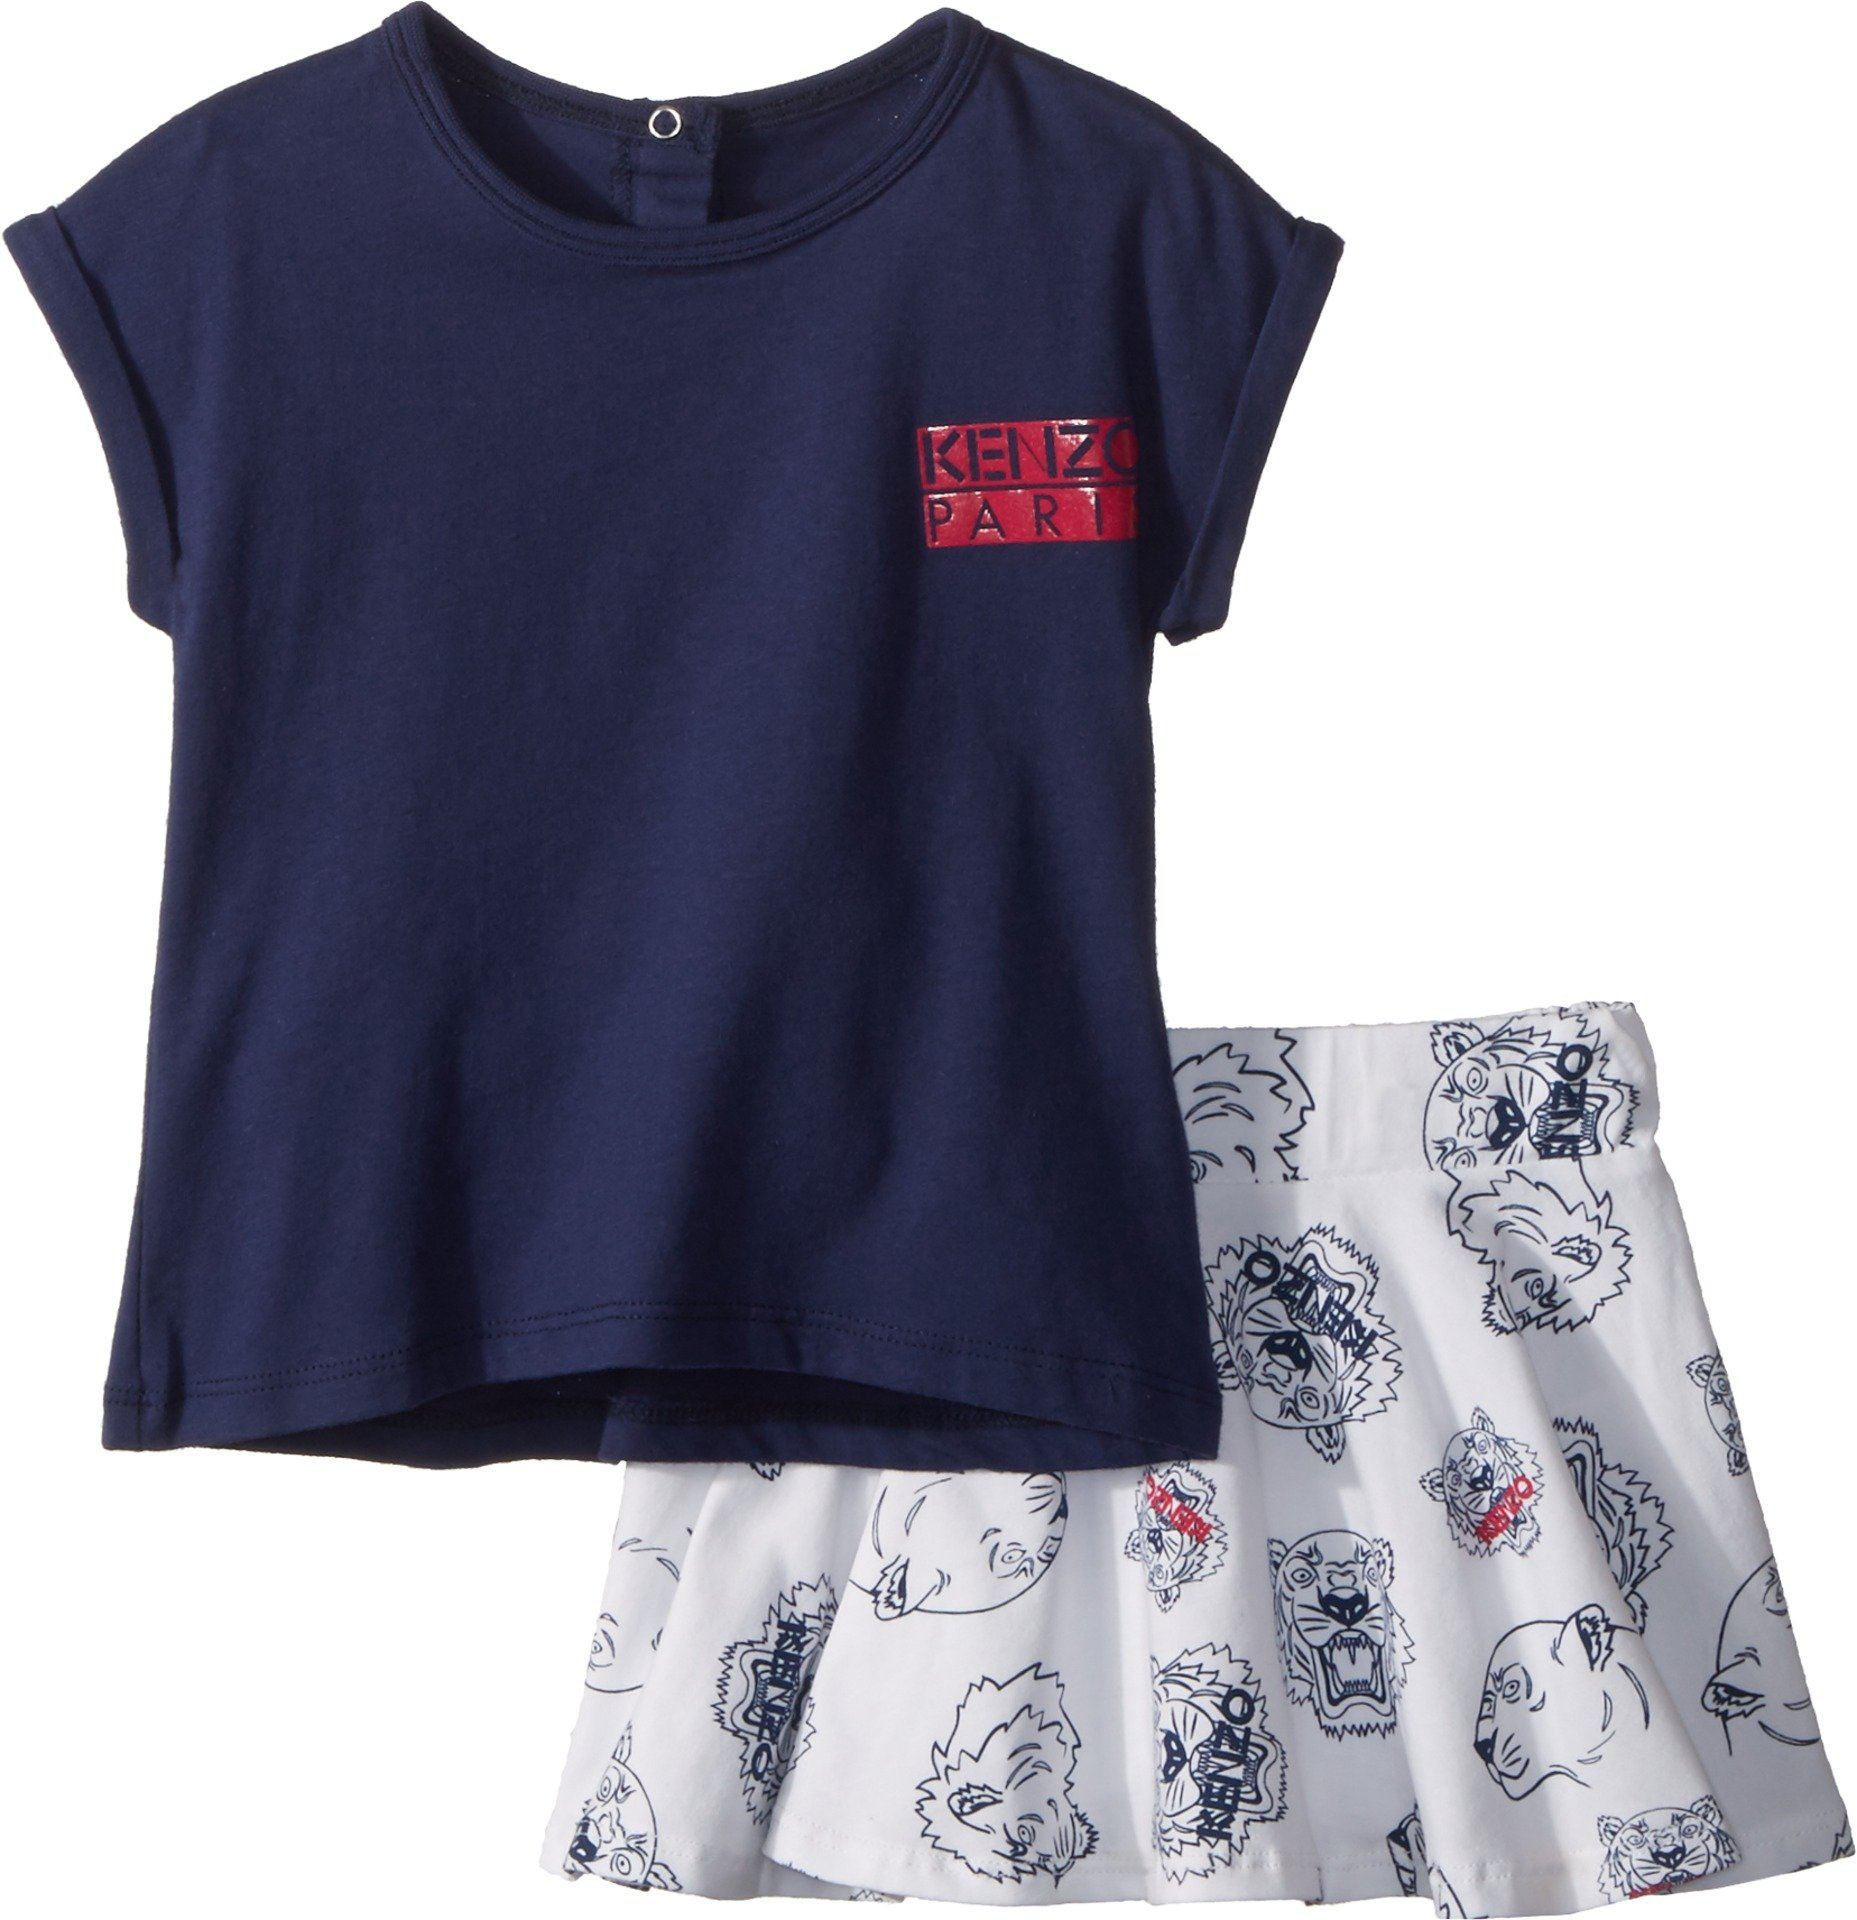 Kenzo Kids Baby Girl's Tee Shirt and Skirt Tigers (Toddler) Navy 3T by Kenzo Kids (Image #1)